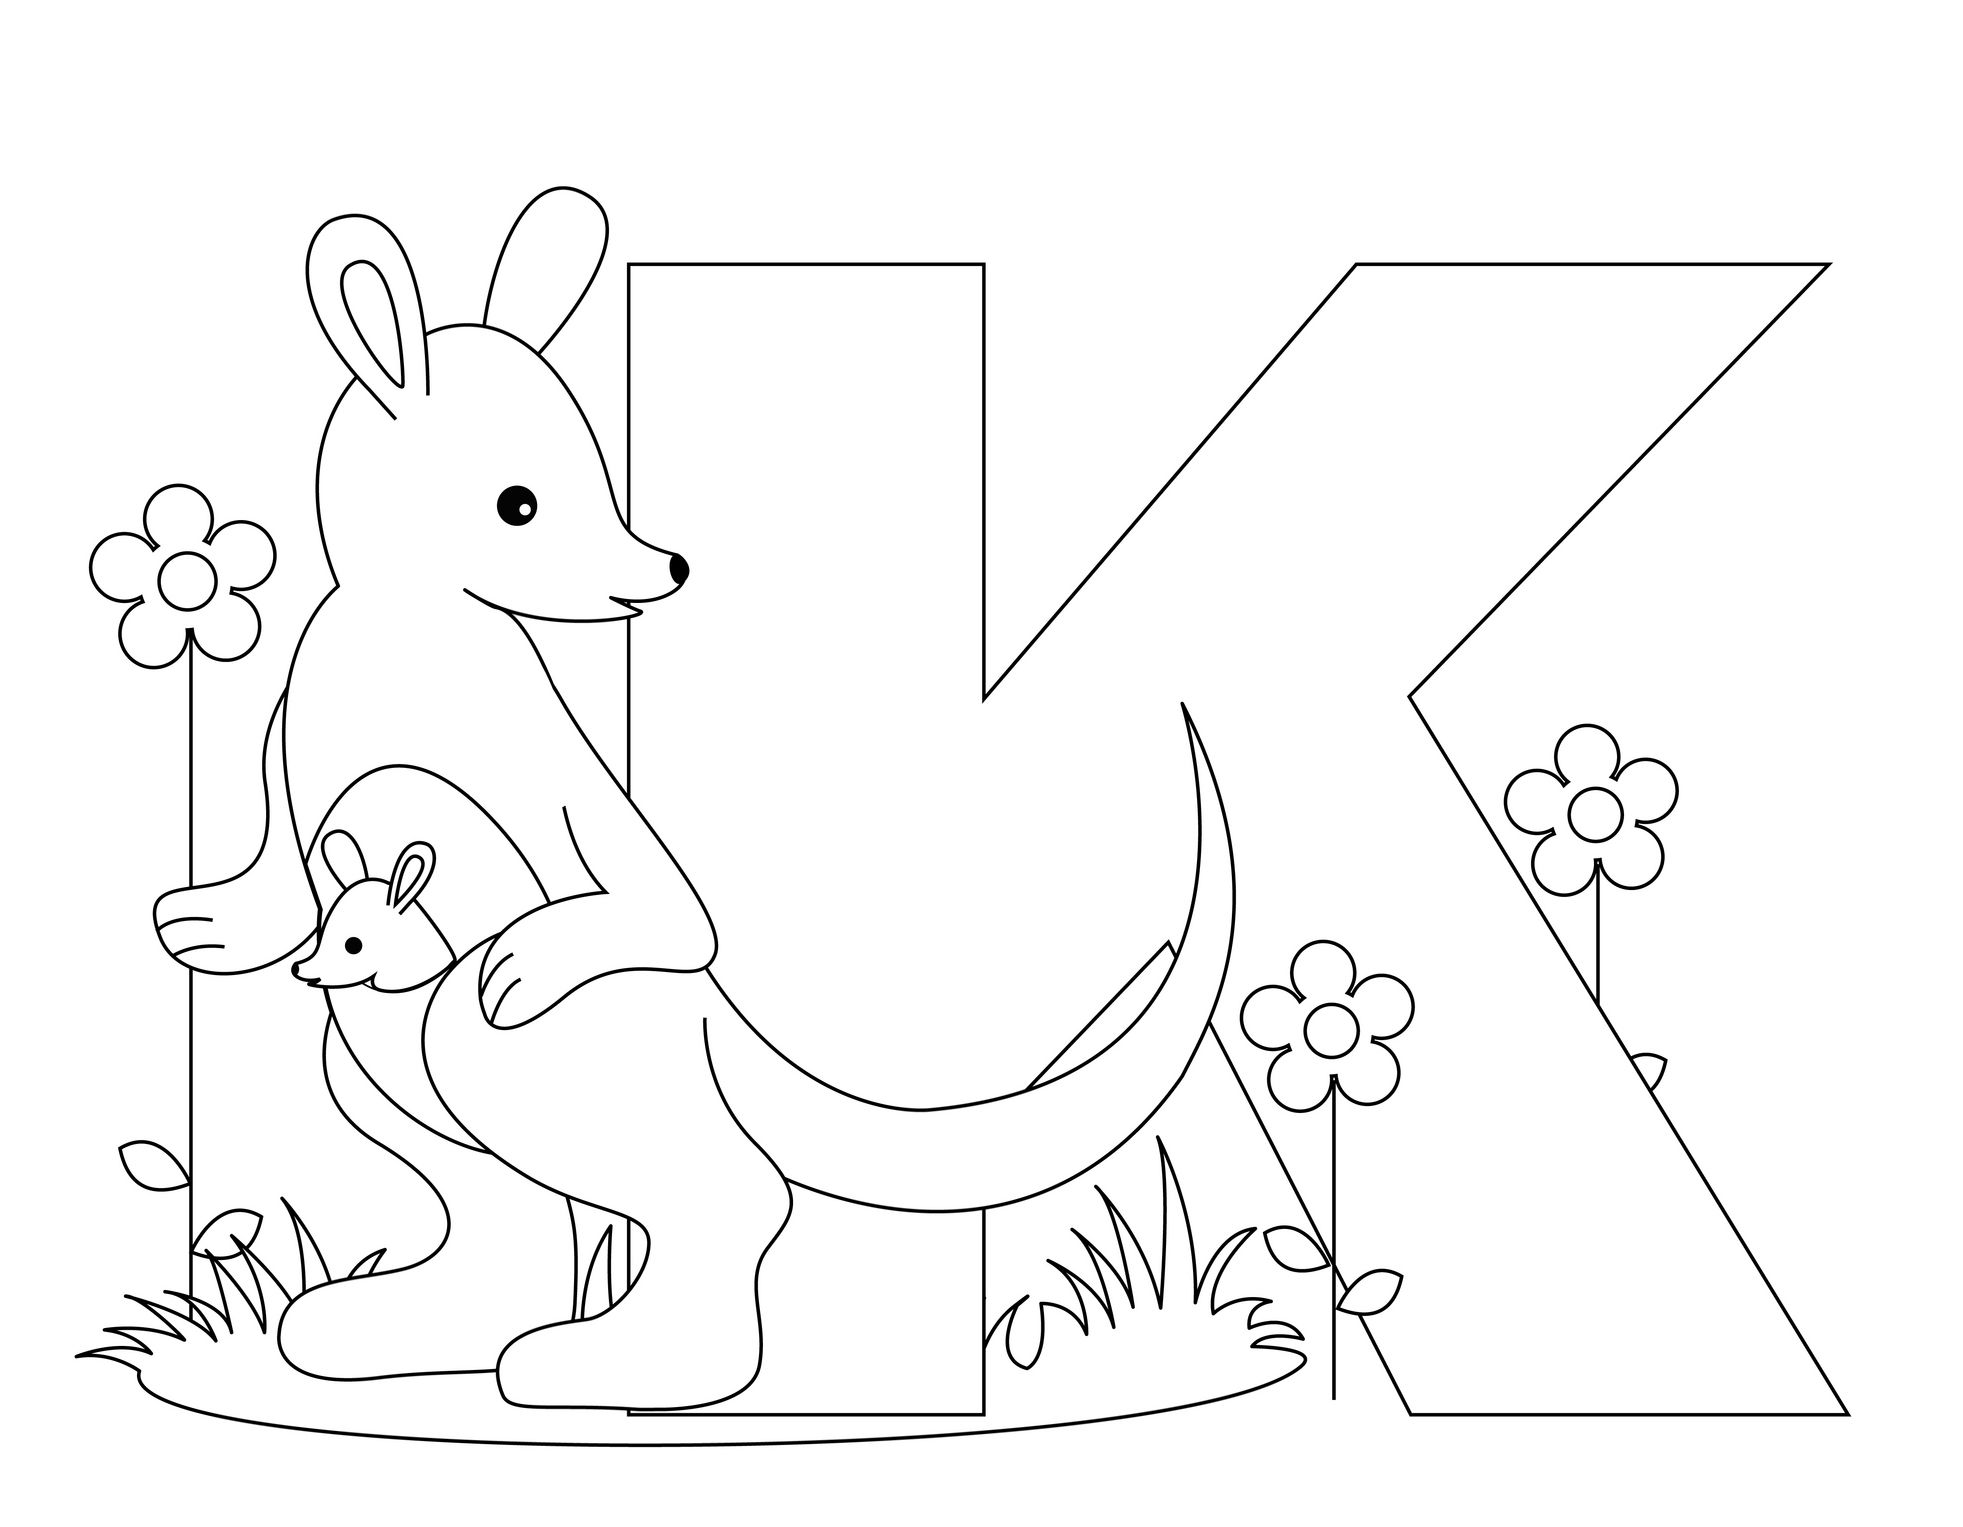 Letter K Coloring In 2020 Kindergarten Coloring Pages Abc Coloring Pages Letter A Coloring Pages